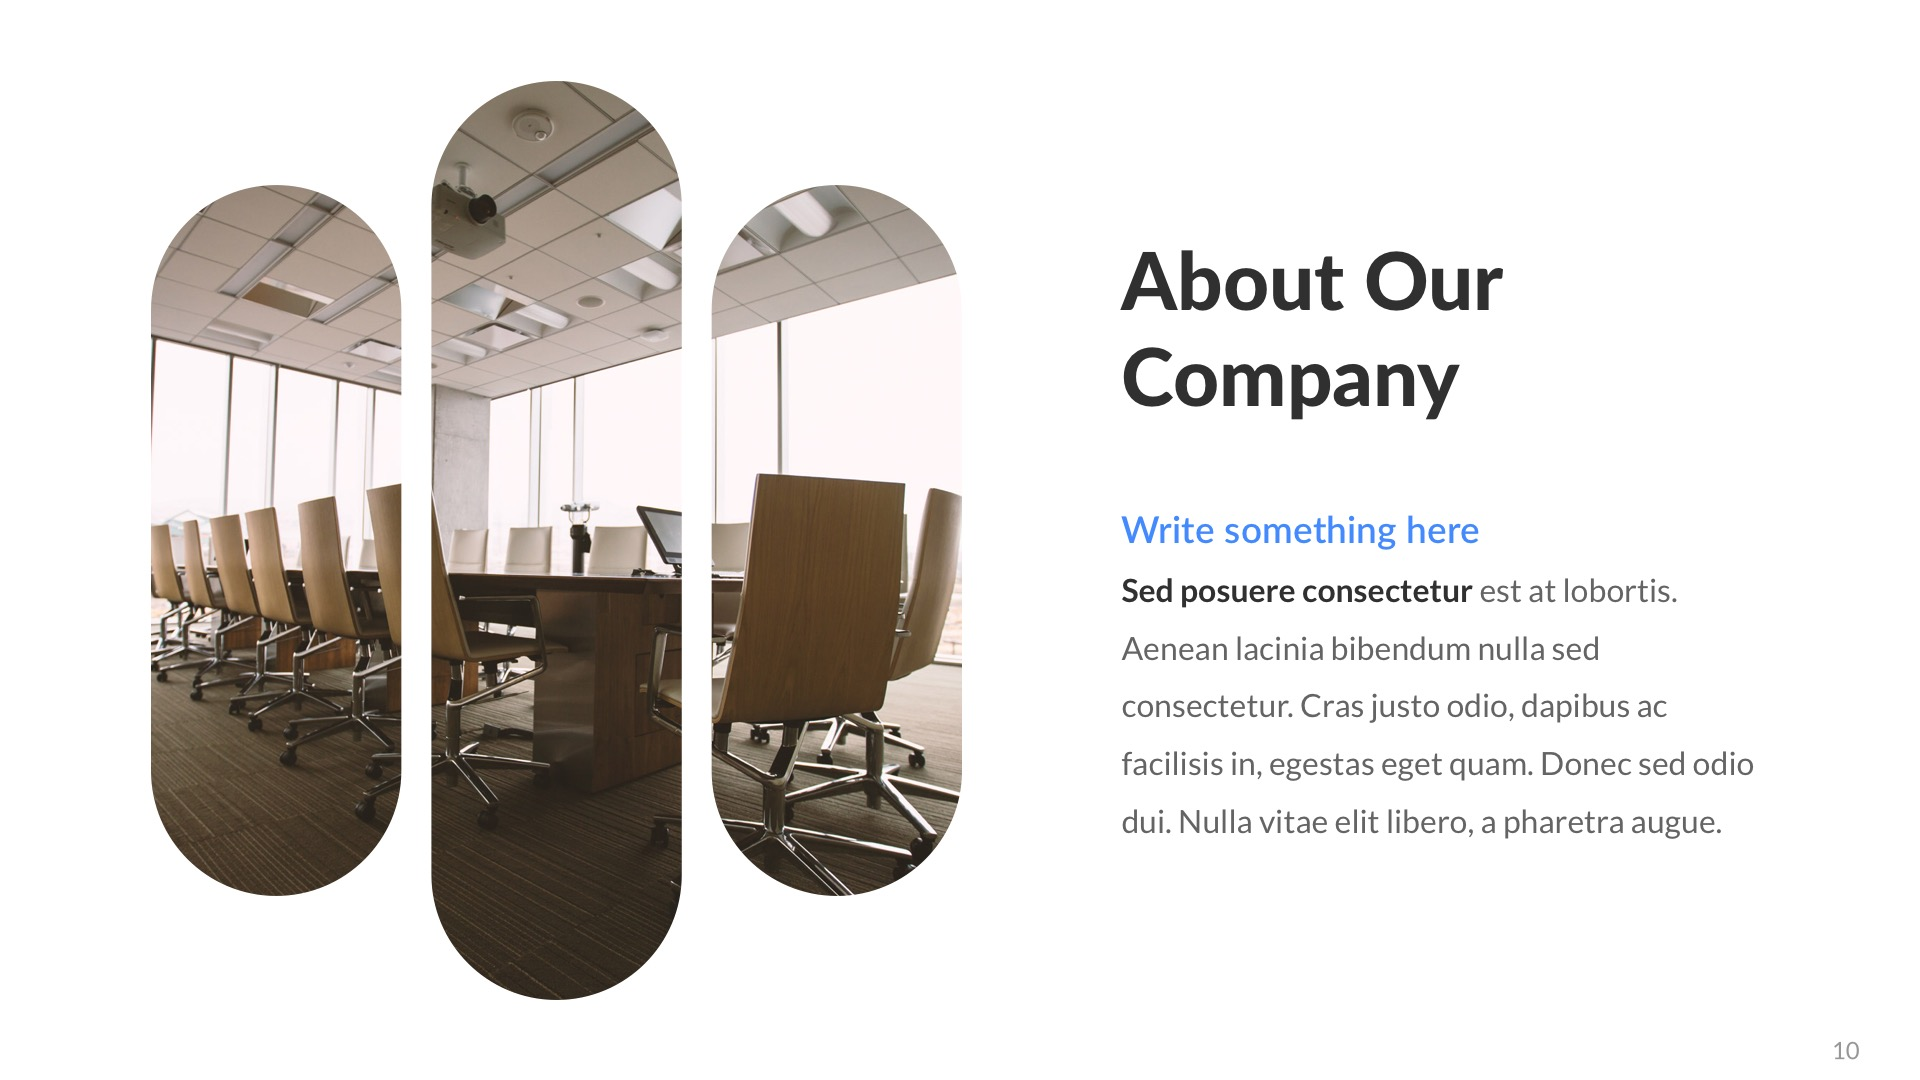 20 amazing modern powerpoint presentation templates the full hd slides can be customized with the 20 theme color options so you can showcase your company and personal profile alramifo Choice Image